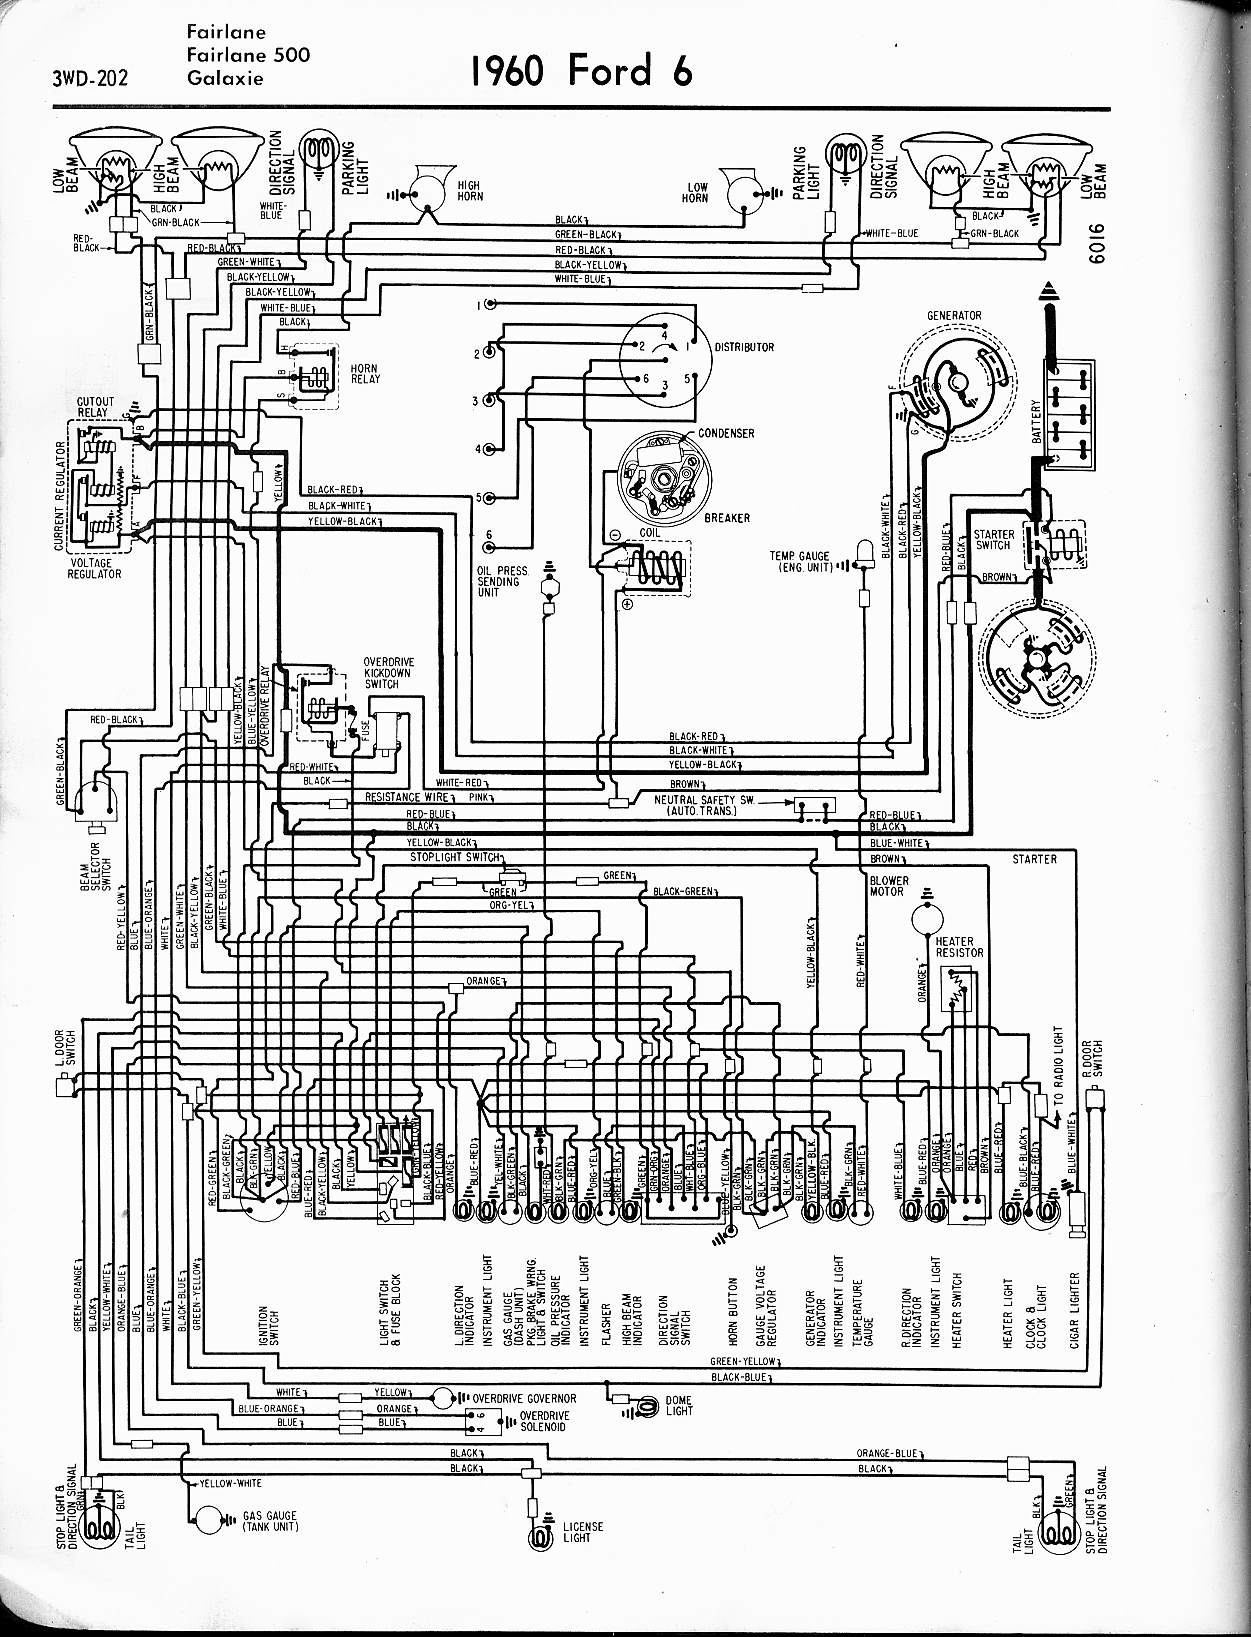 MWire5765 202 1979 ford f100 turn signal wiring diagram wiring diagram simonand 1969 Ford F100 Steering Column Wiring Diagram at gsmportal.co